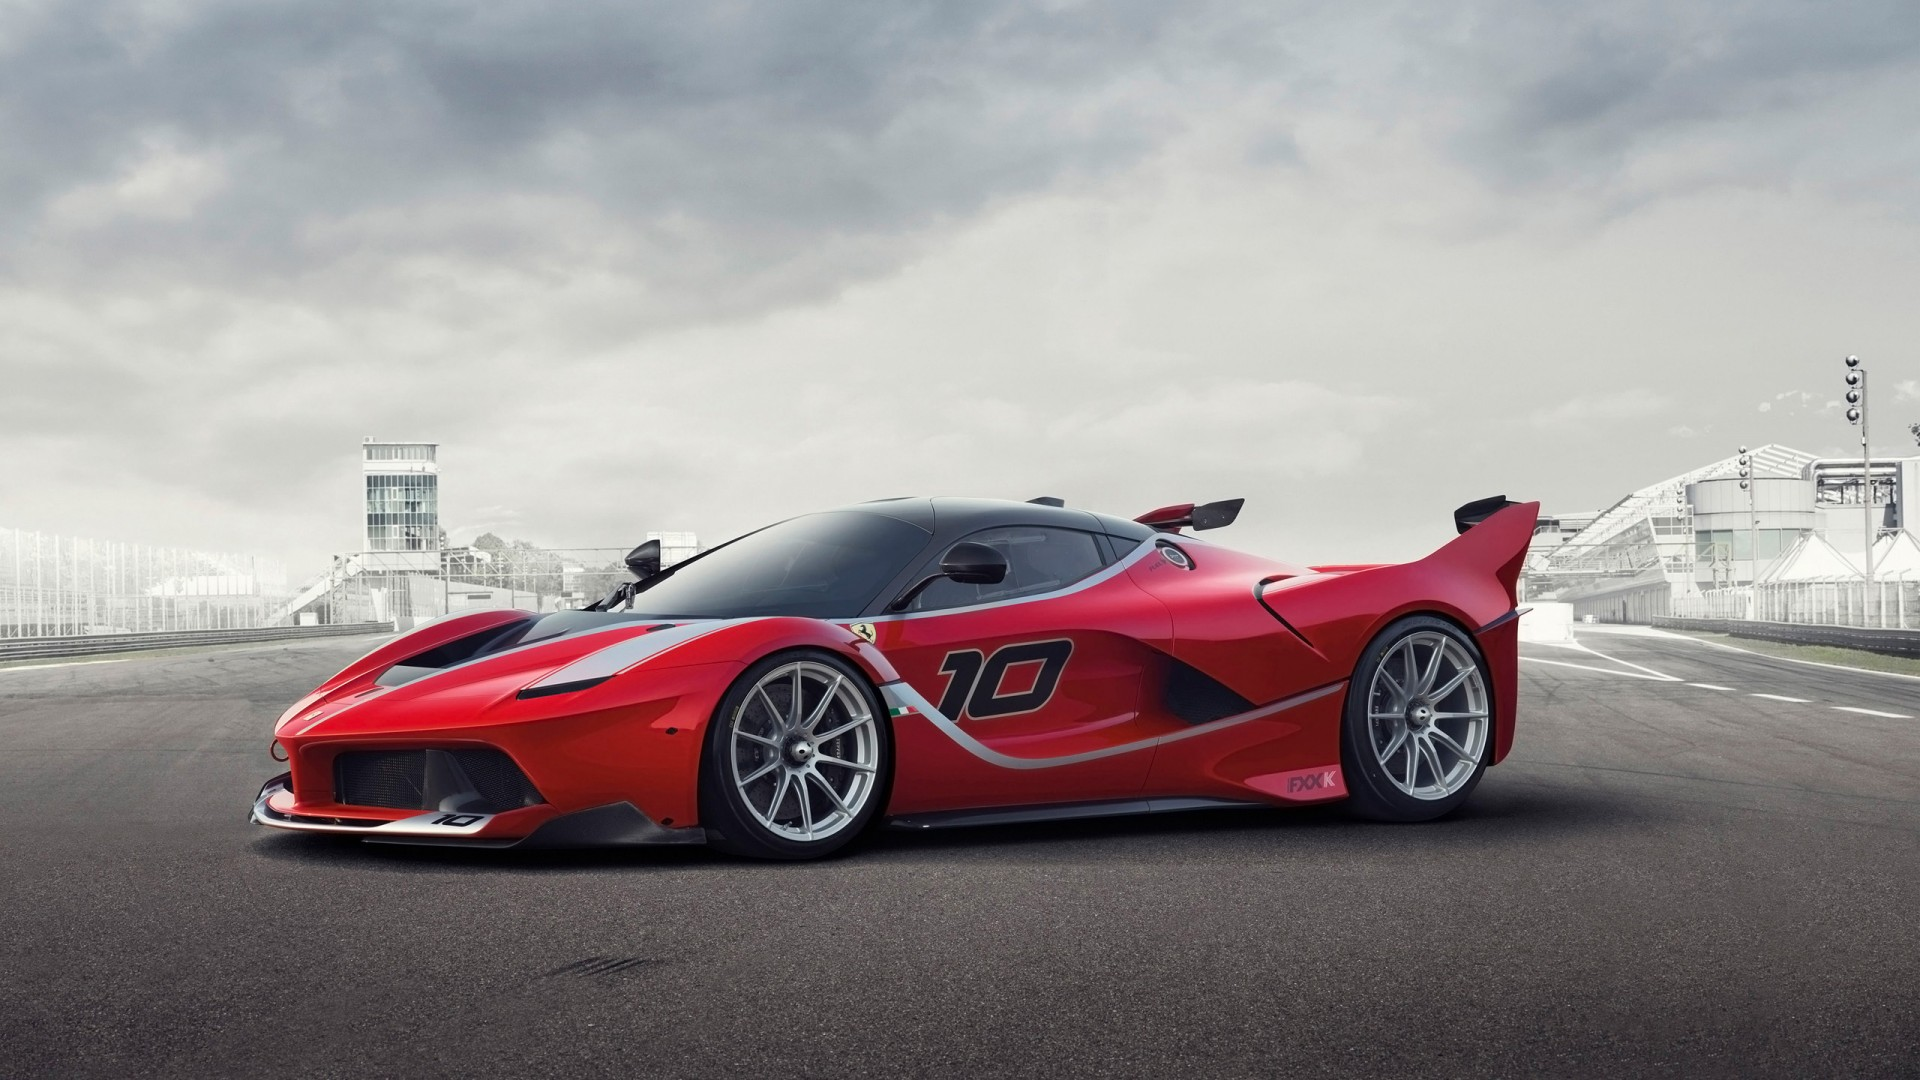 2015 Ferrari Fxx K 2 Wallpaper Hd Car Wallpapers Id 4980